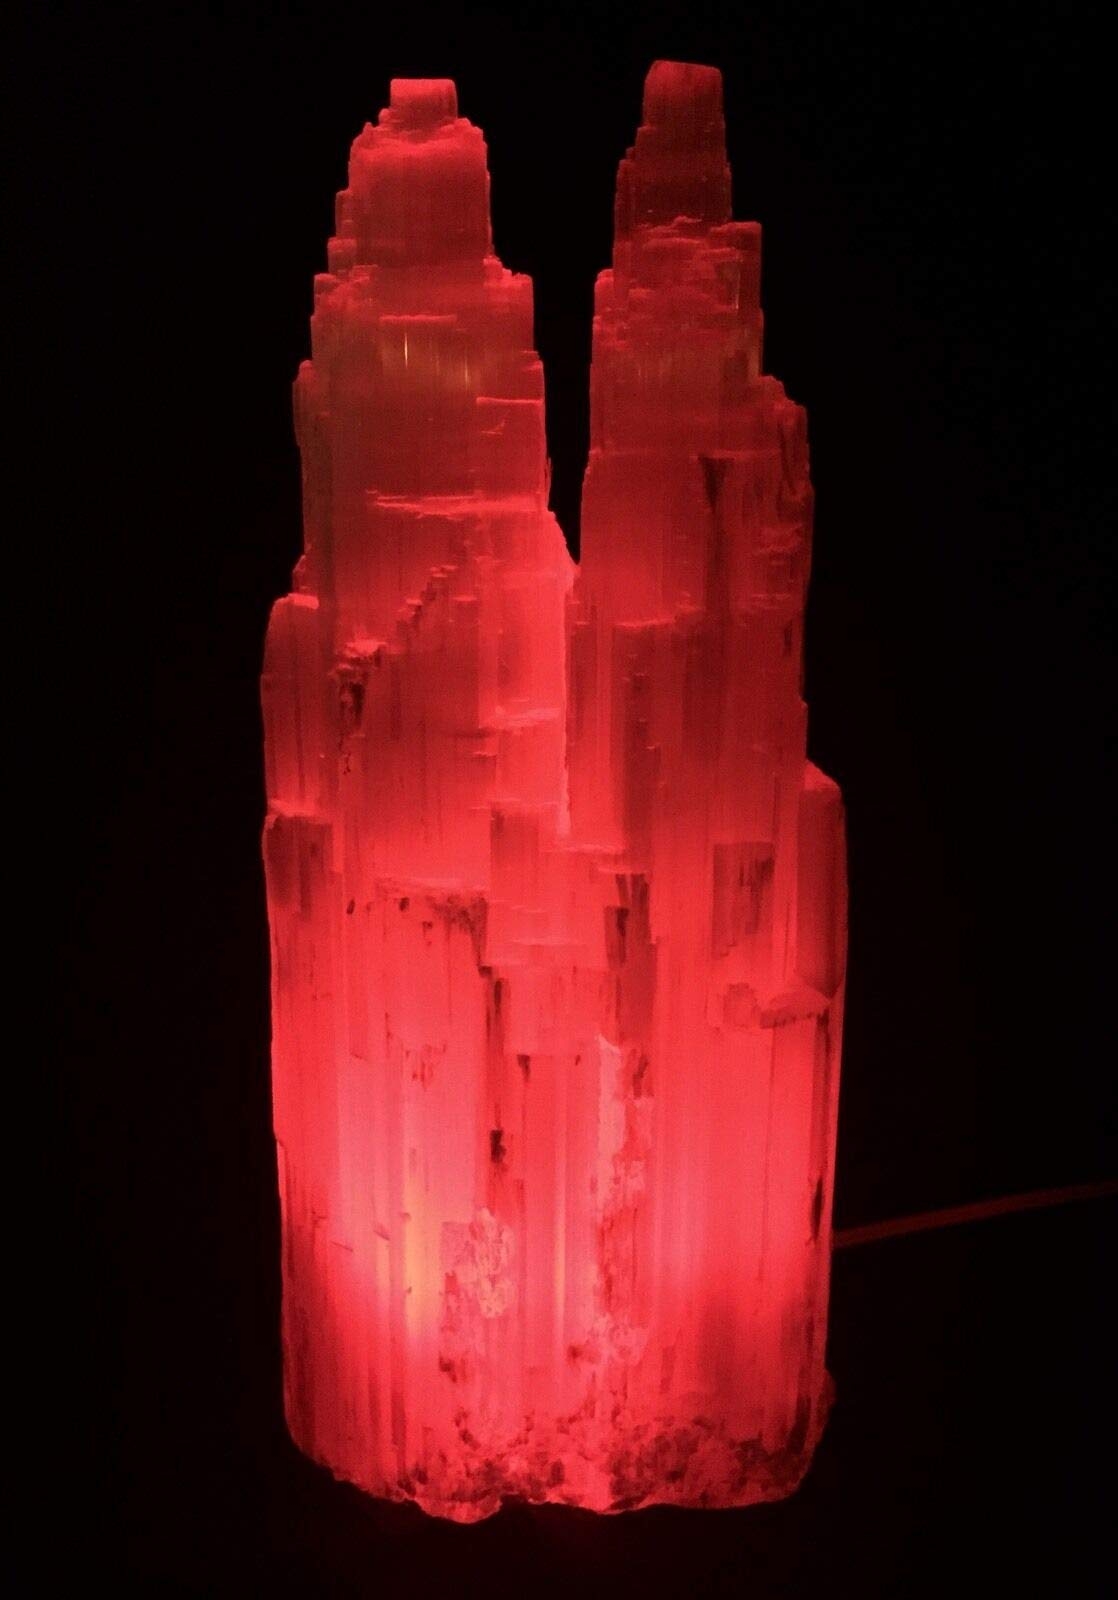 Large Selenite Lamp W/Cord Red LED Bulb Selenite Crystal Tower Two Point Double.Natural Crystals & Rocks for Cabbing, Cutting, Lapidary, Tumbling, Polishing, Wire Wrapping, Wicca by JumpingLight (Image #3)